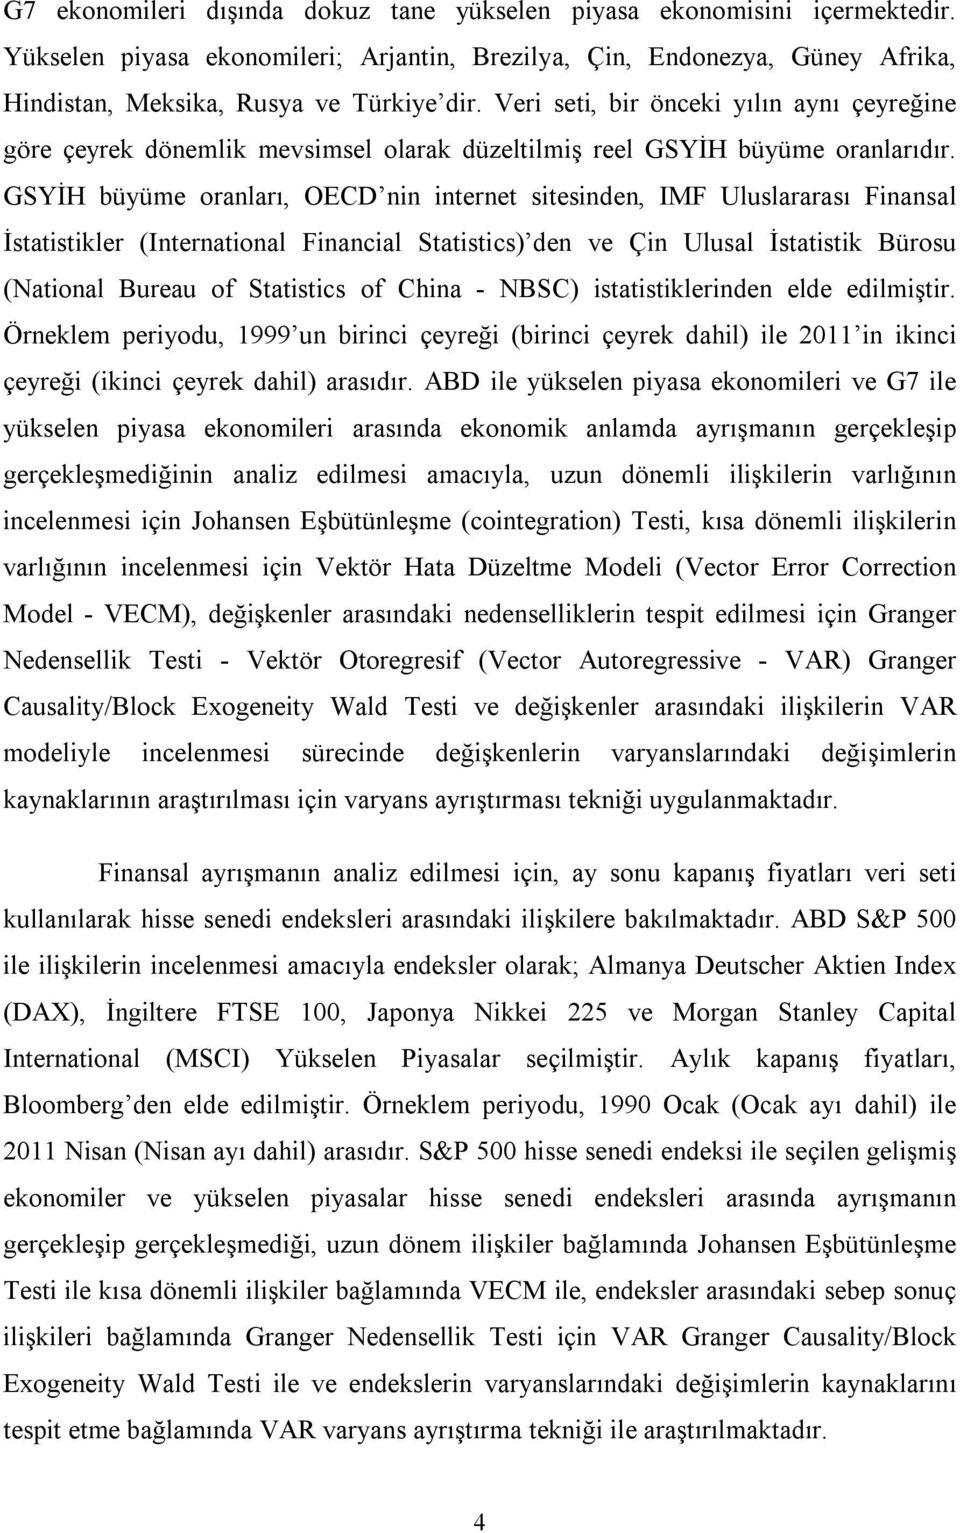 GSYİH büyüme oranları, OECD nin internet sitesinden, IMF Uluslararası Finansal İstatistikler (International Financial Statistics) den ve Çin Ulusal İstatistik Bürosu (National Bureau of Statistics of